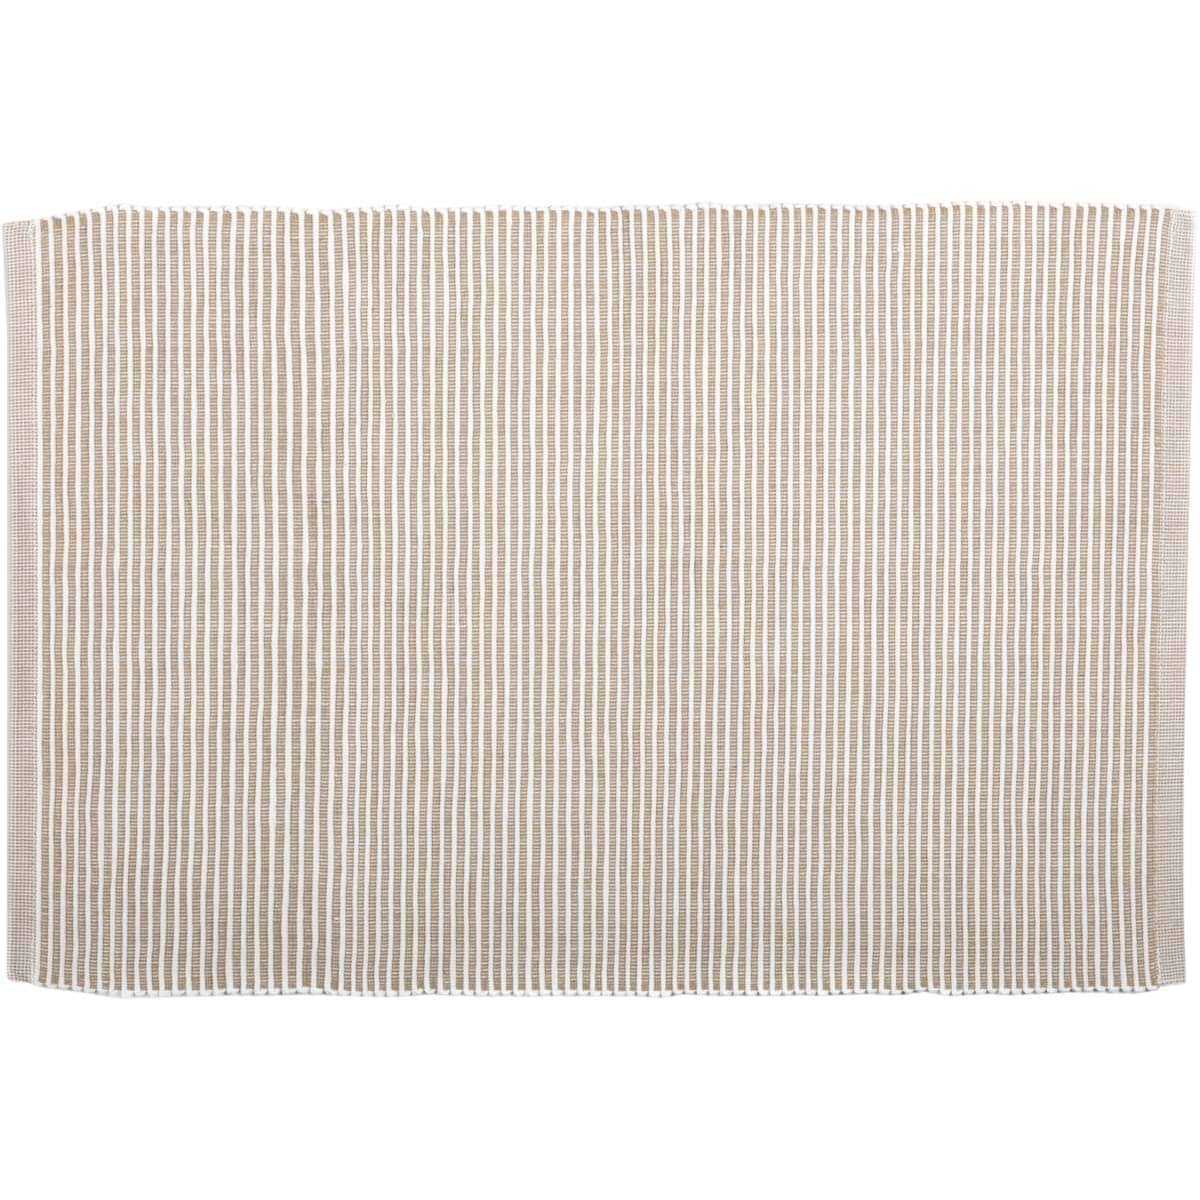 Ashton Ribbed Placemat Set Placemat 12x18 Overstock 17931391